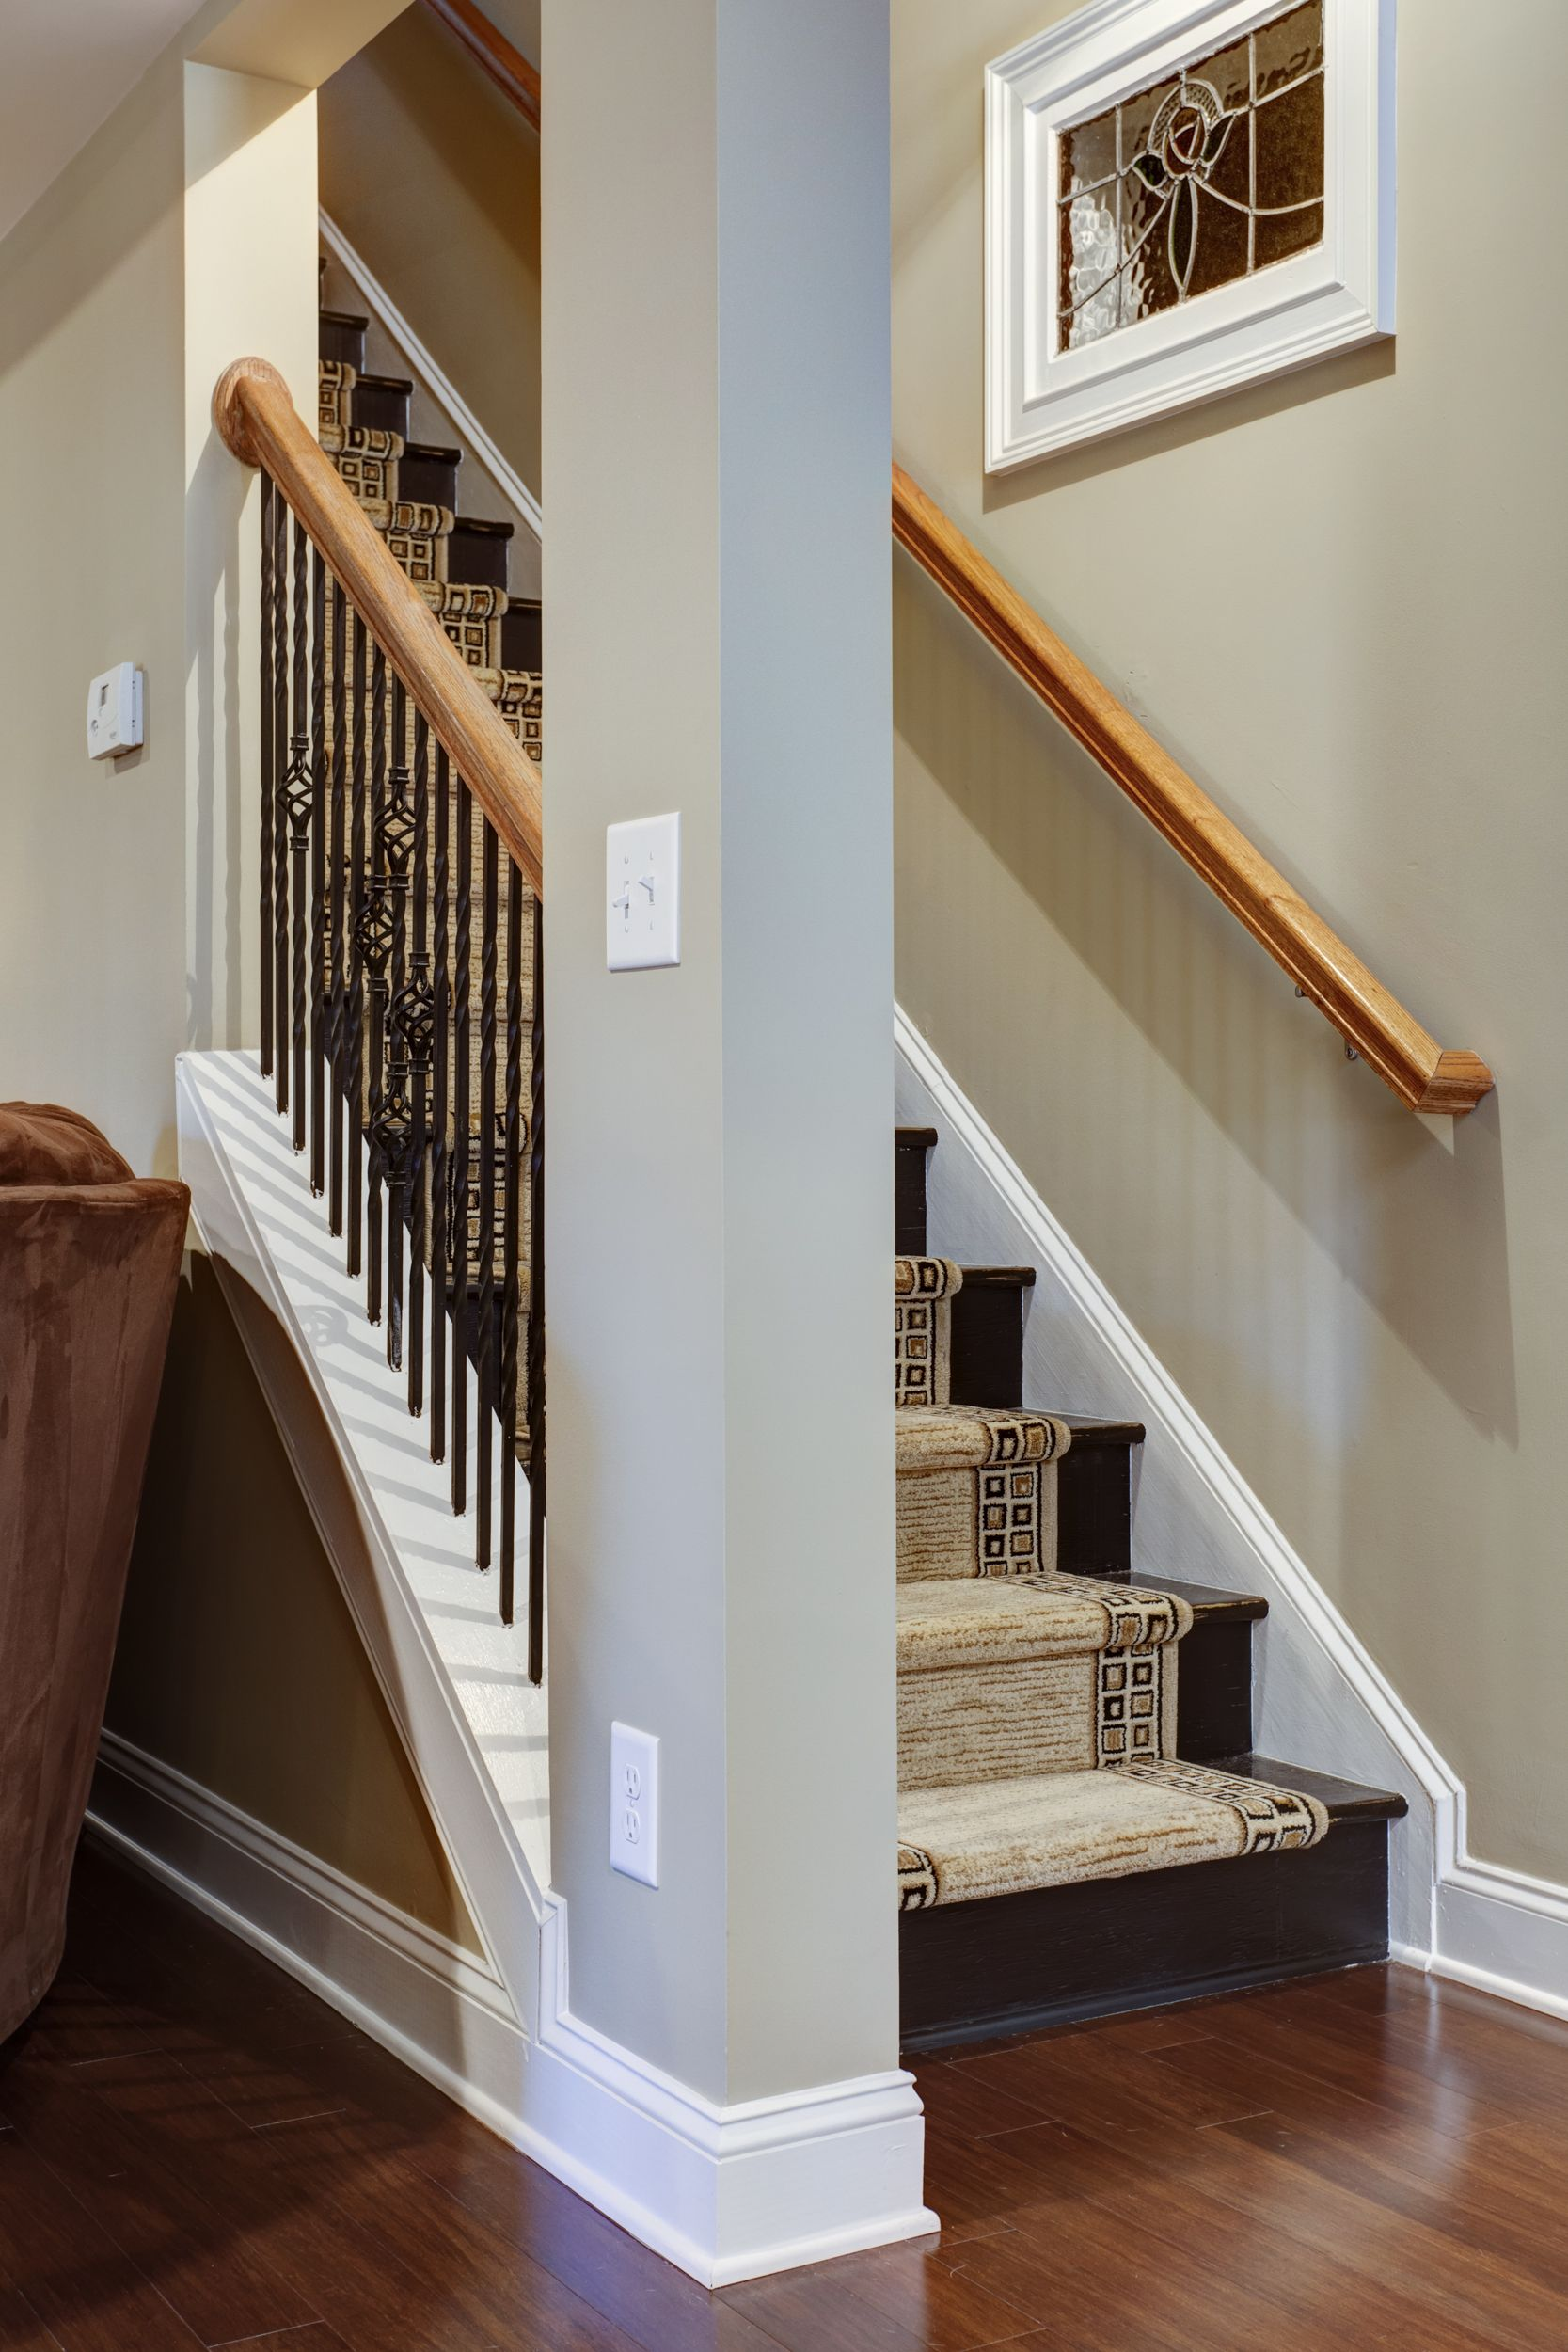 DIY inexpensive stairs in basement. These stairs are painted and distressed  with a carpet runner